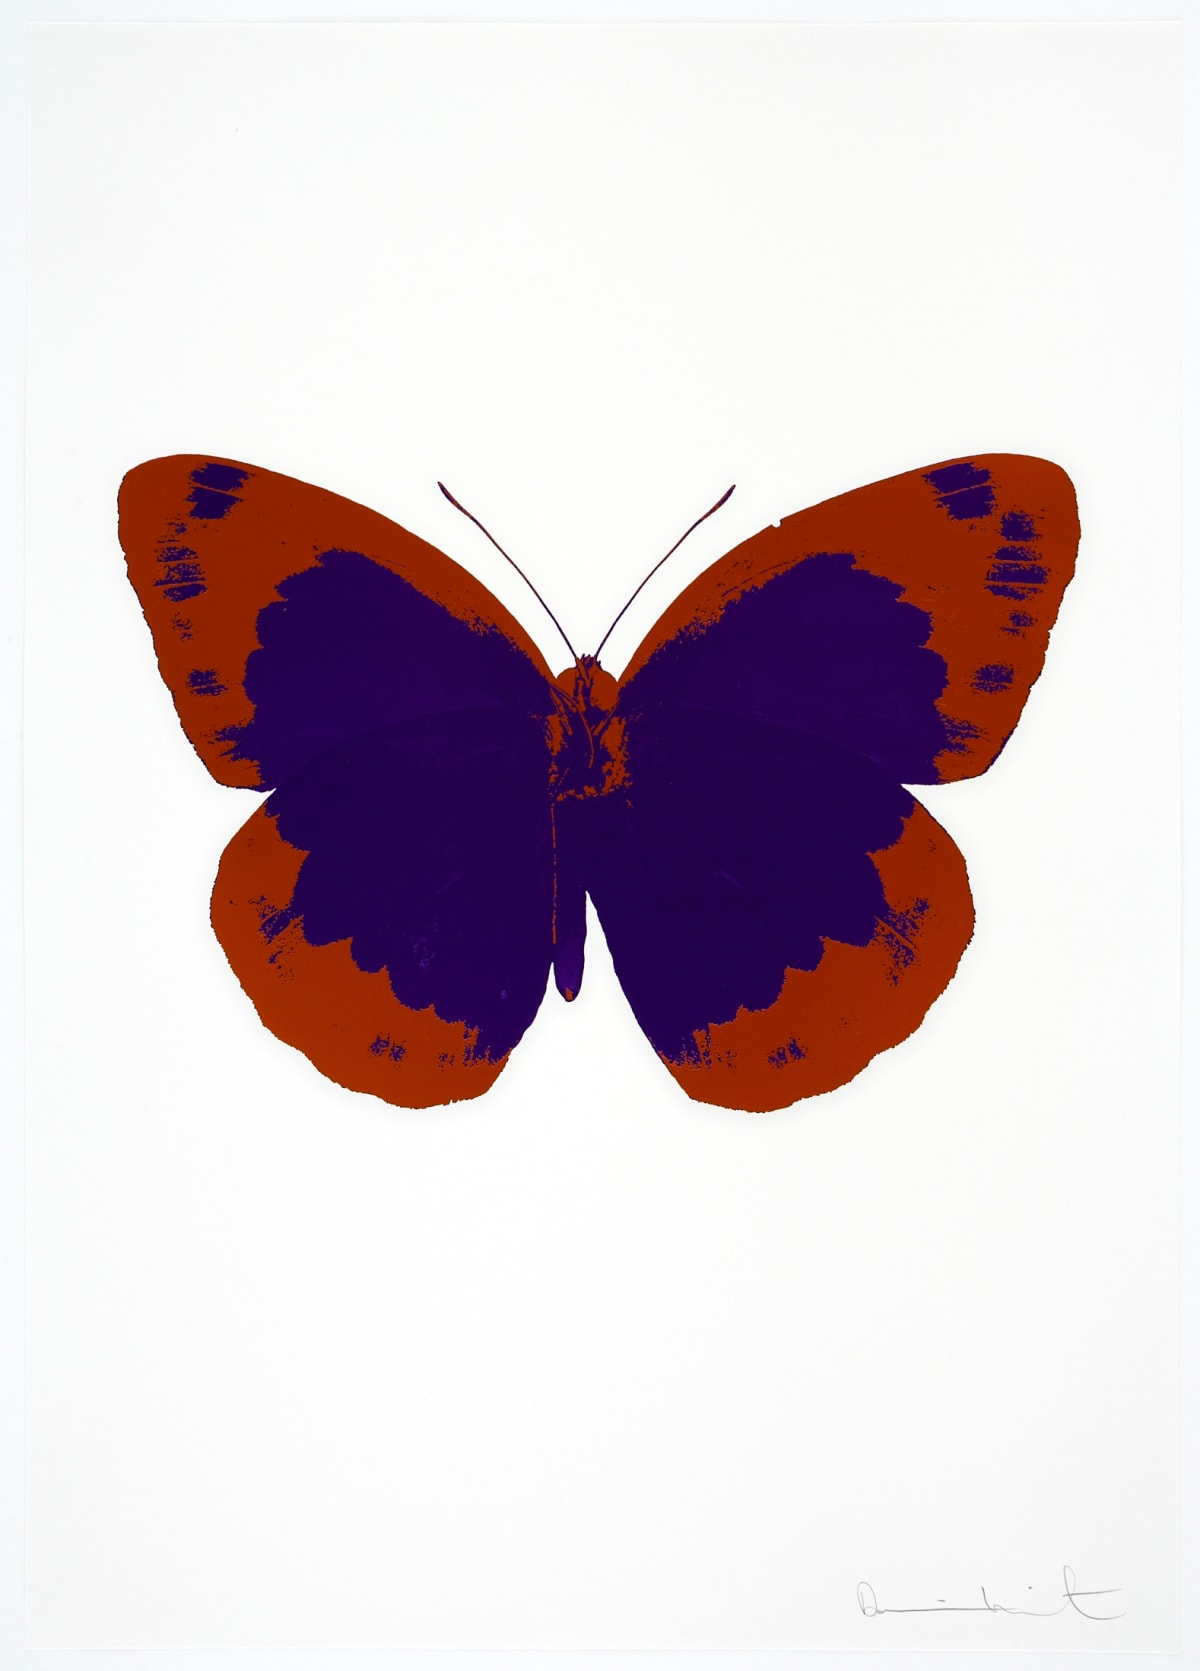 Damien Hirst The Souls II - Imperial Purple/Prairie Copper/Blind Impression, 2010 2 colour foil block on 300gsm Arches 88 archival paper. Signed and numbered. Published by Paul Stolper and Other Criteria 72 x 51cm OC7890 / 658-73 Edition of 15